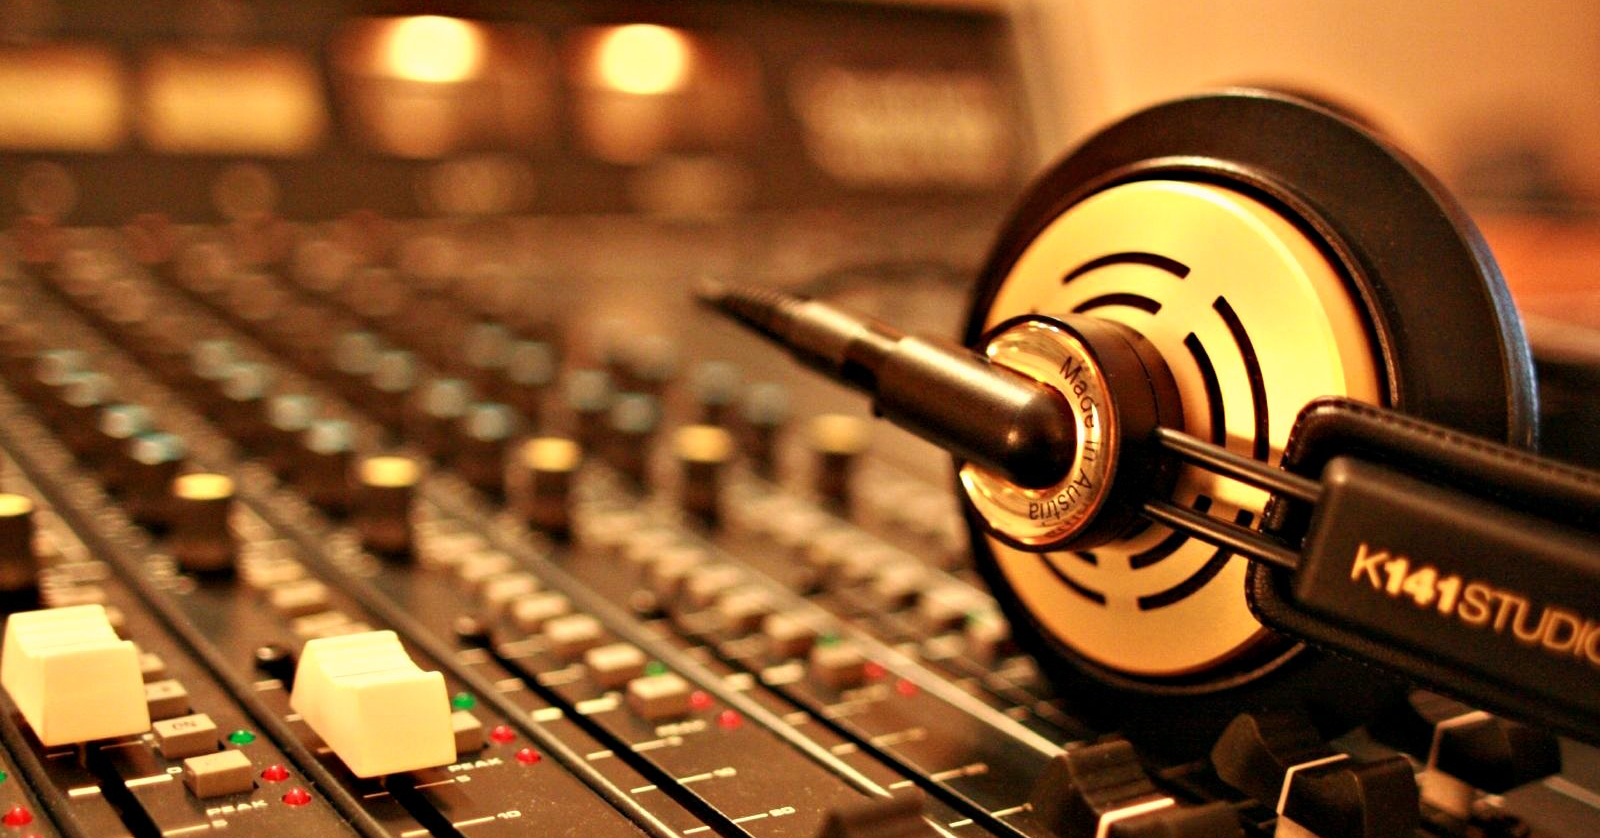 5 Essential Ways to Listen to Your Mixes